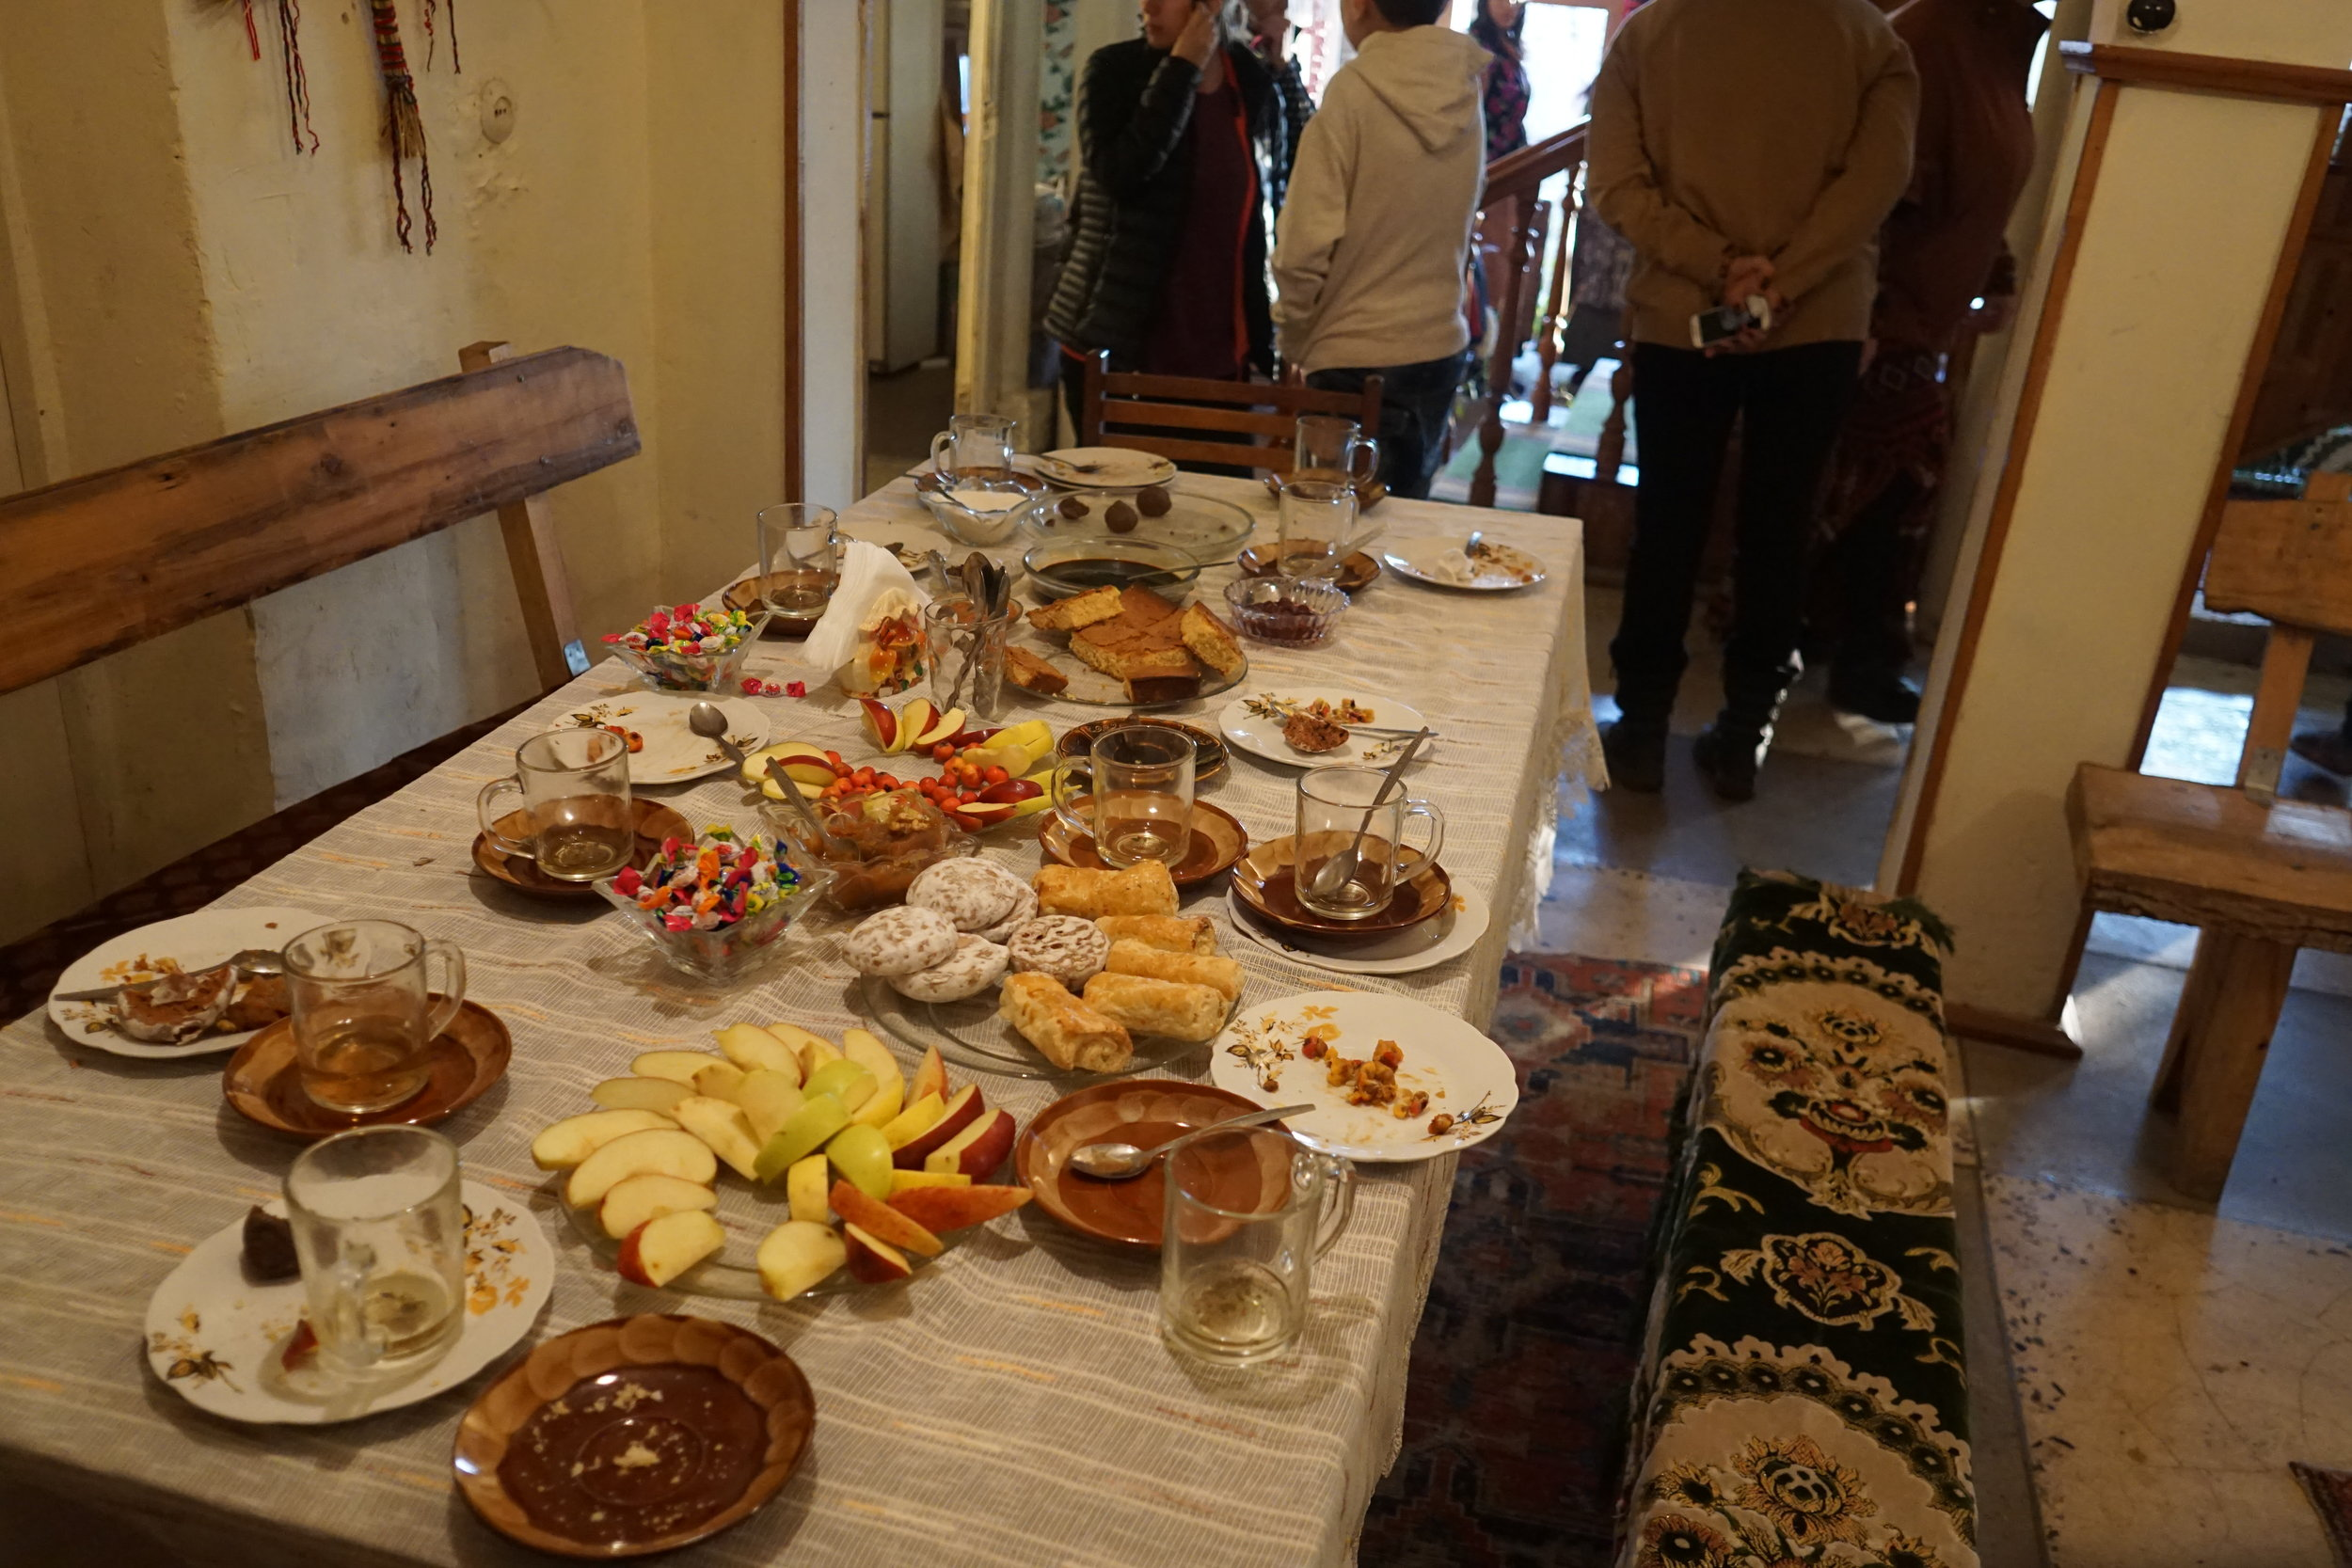 Feasting in Armenia, the Caucasus region